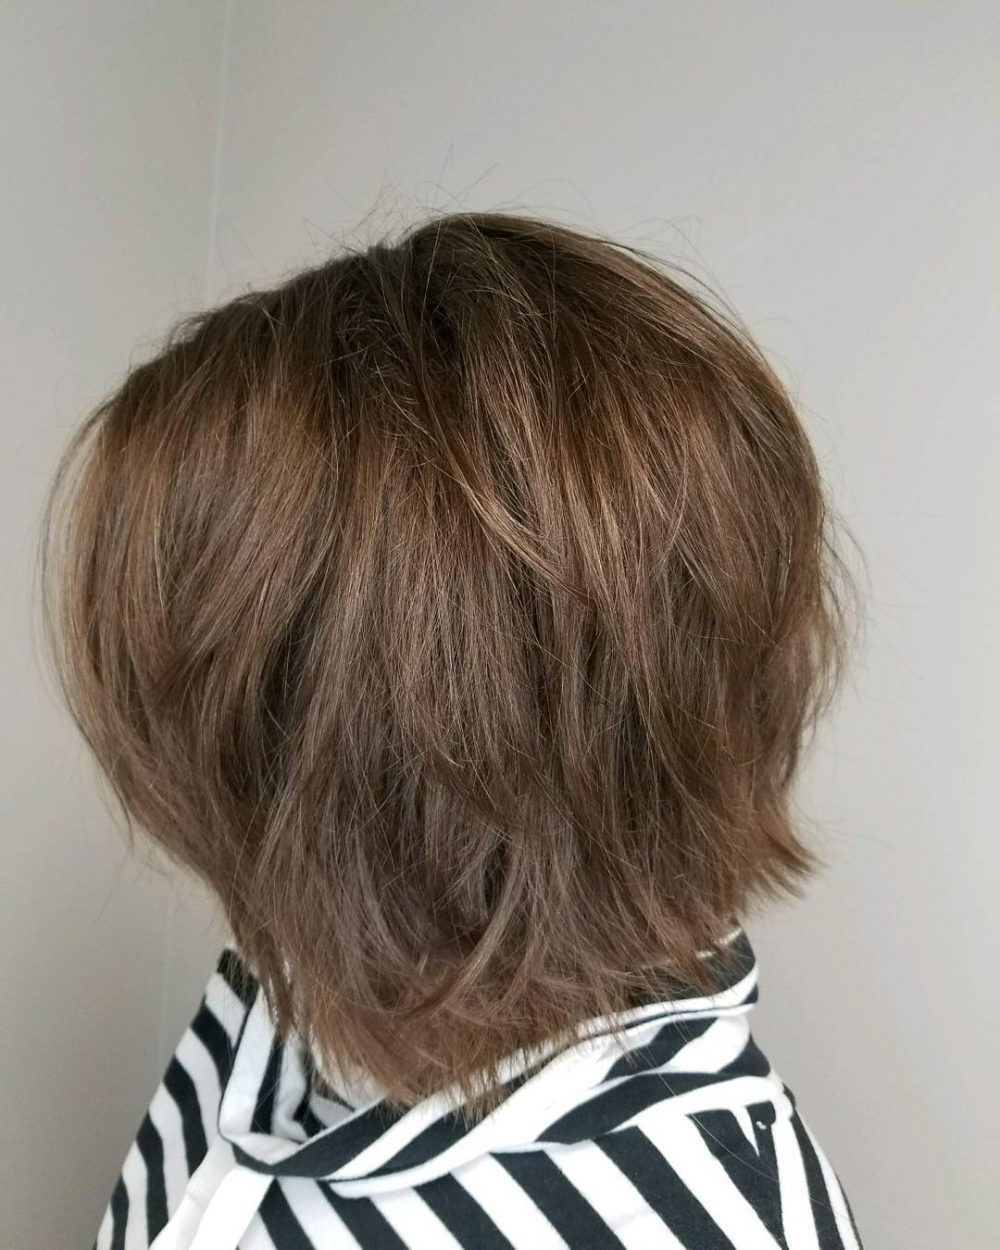 2017 Medium Hairstyles With Choppy Layers Within 34 Best Choppy Layered Hairstyles (That Will Flatter Anyone) (View 1 of 20)